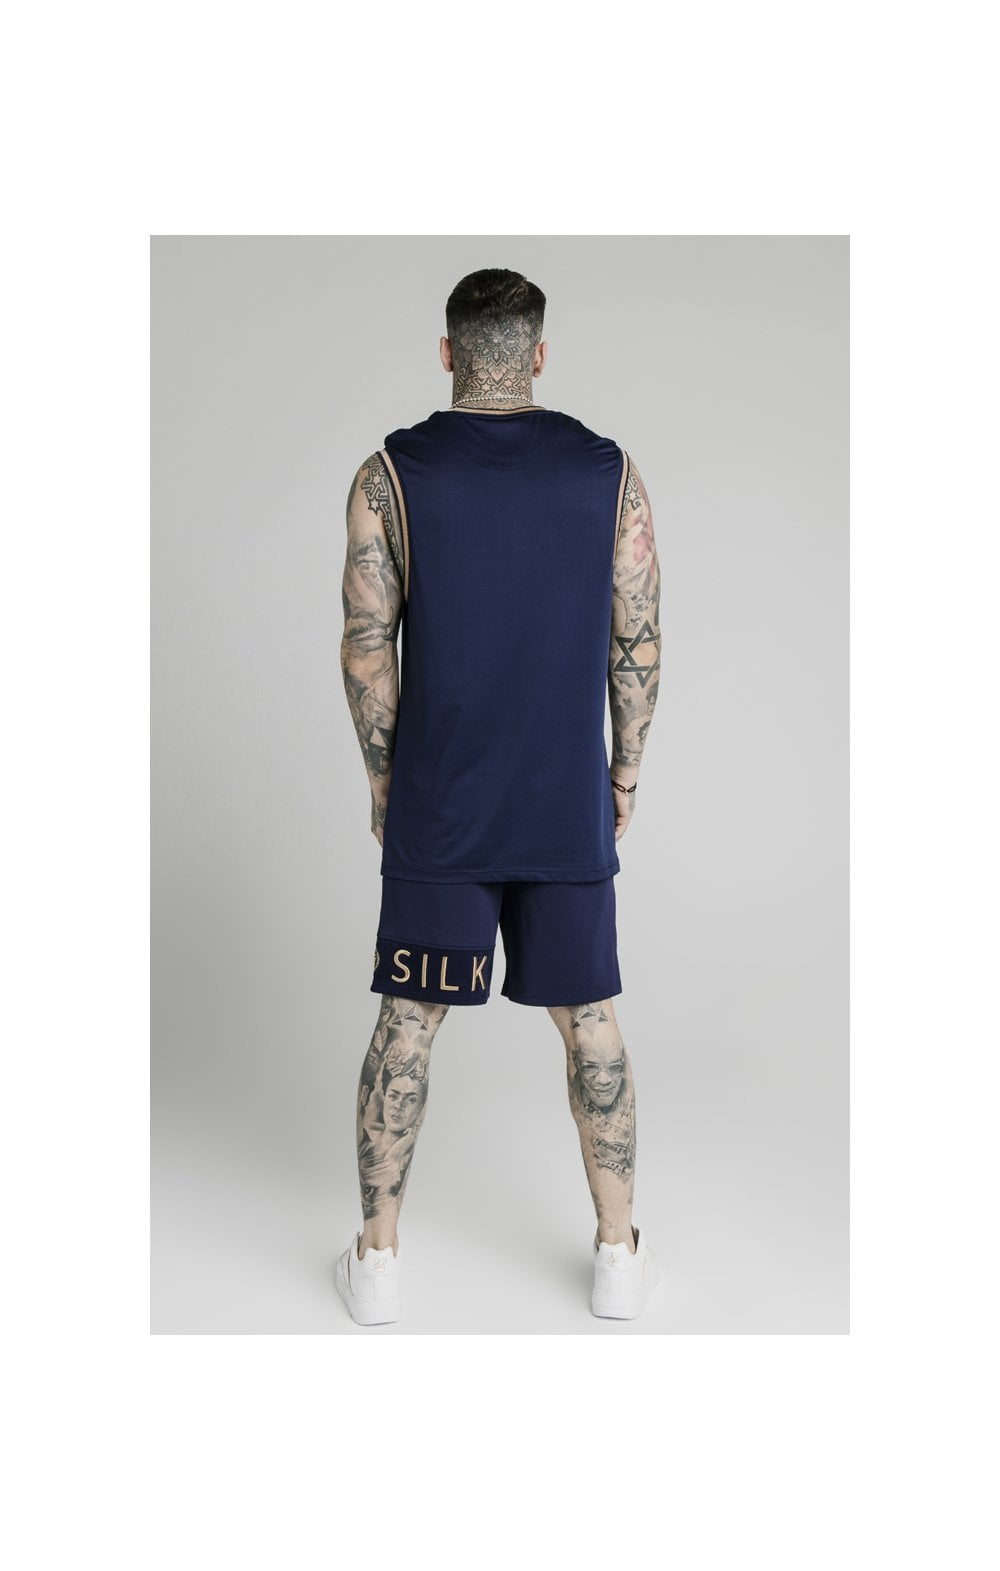 SikSilk Eyelet Panel Relaxed Fit Shorts - Navy Eclipse (8)